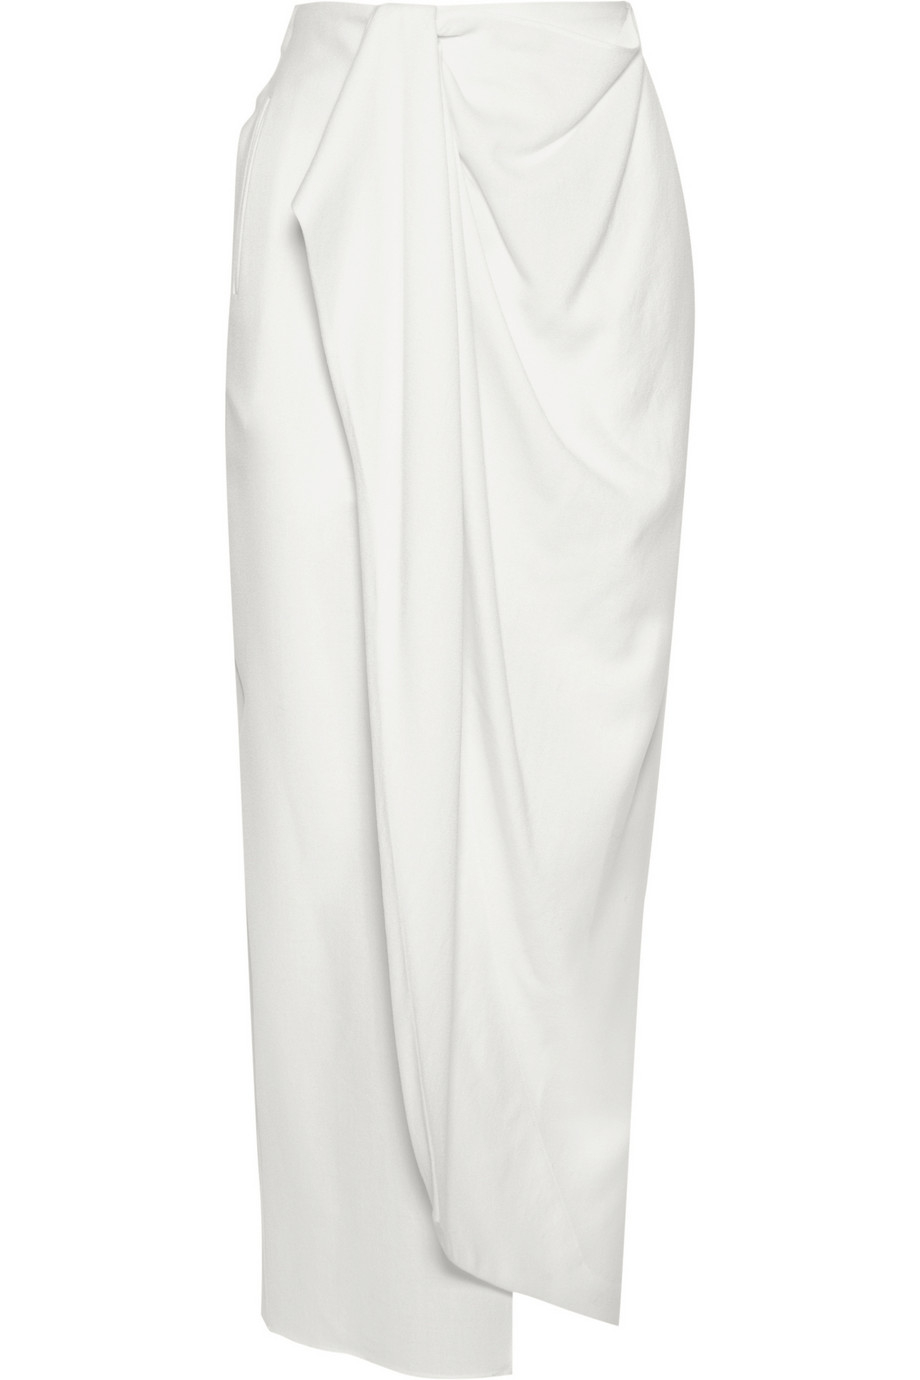 Baja east Wrap-Effect Wool-Crepe Maxi Skirt in White | Lyst